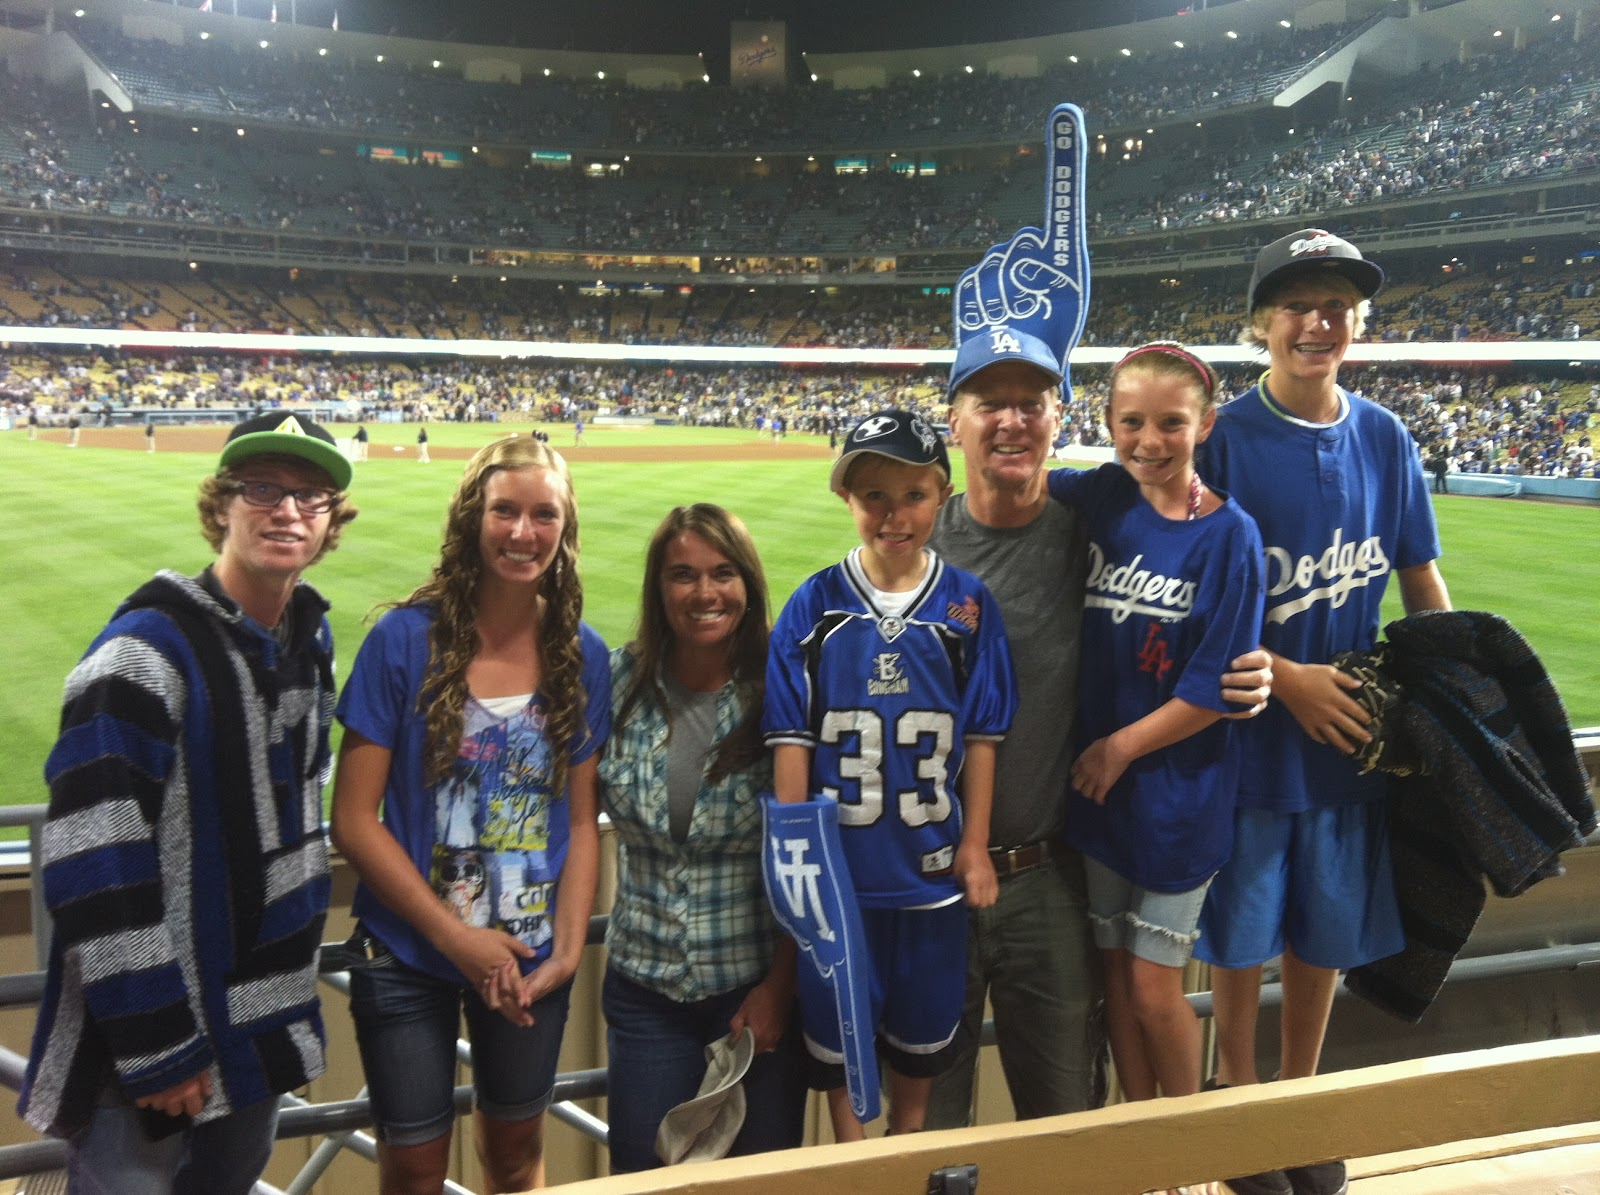 The John and Jer gang: Dodgers game